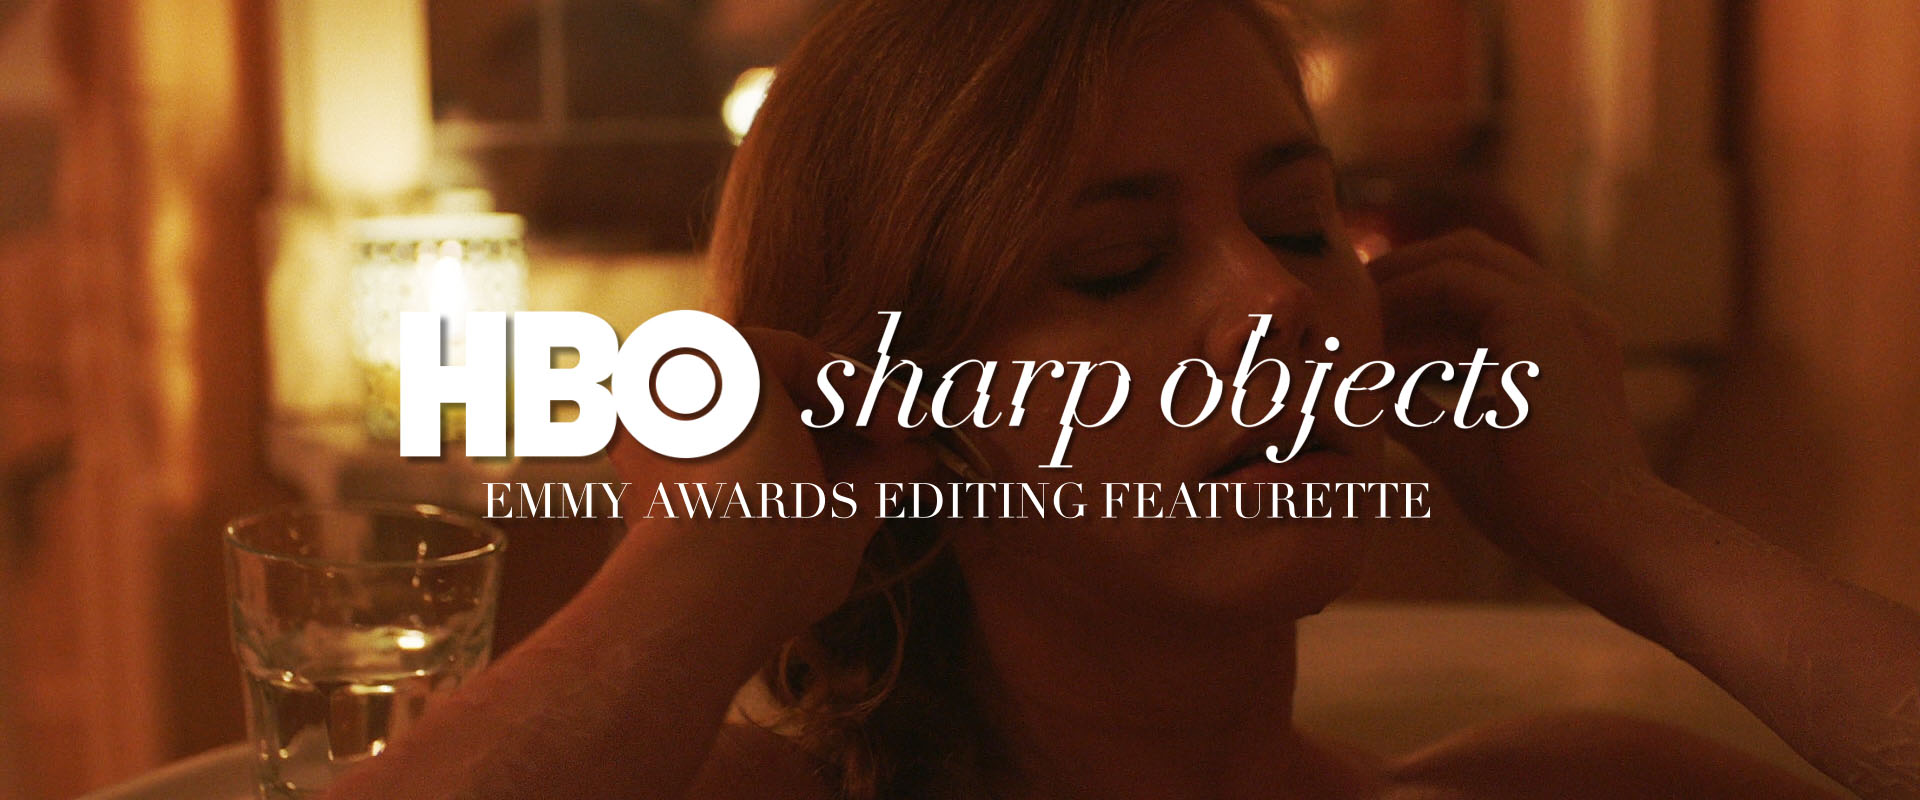 sharp objects trauma and memories hbo featurette thumbnail